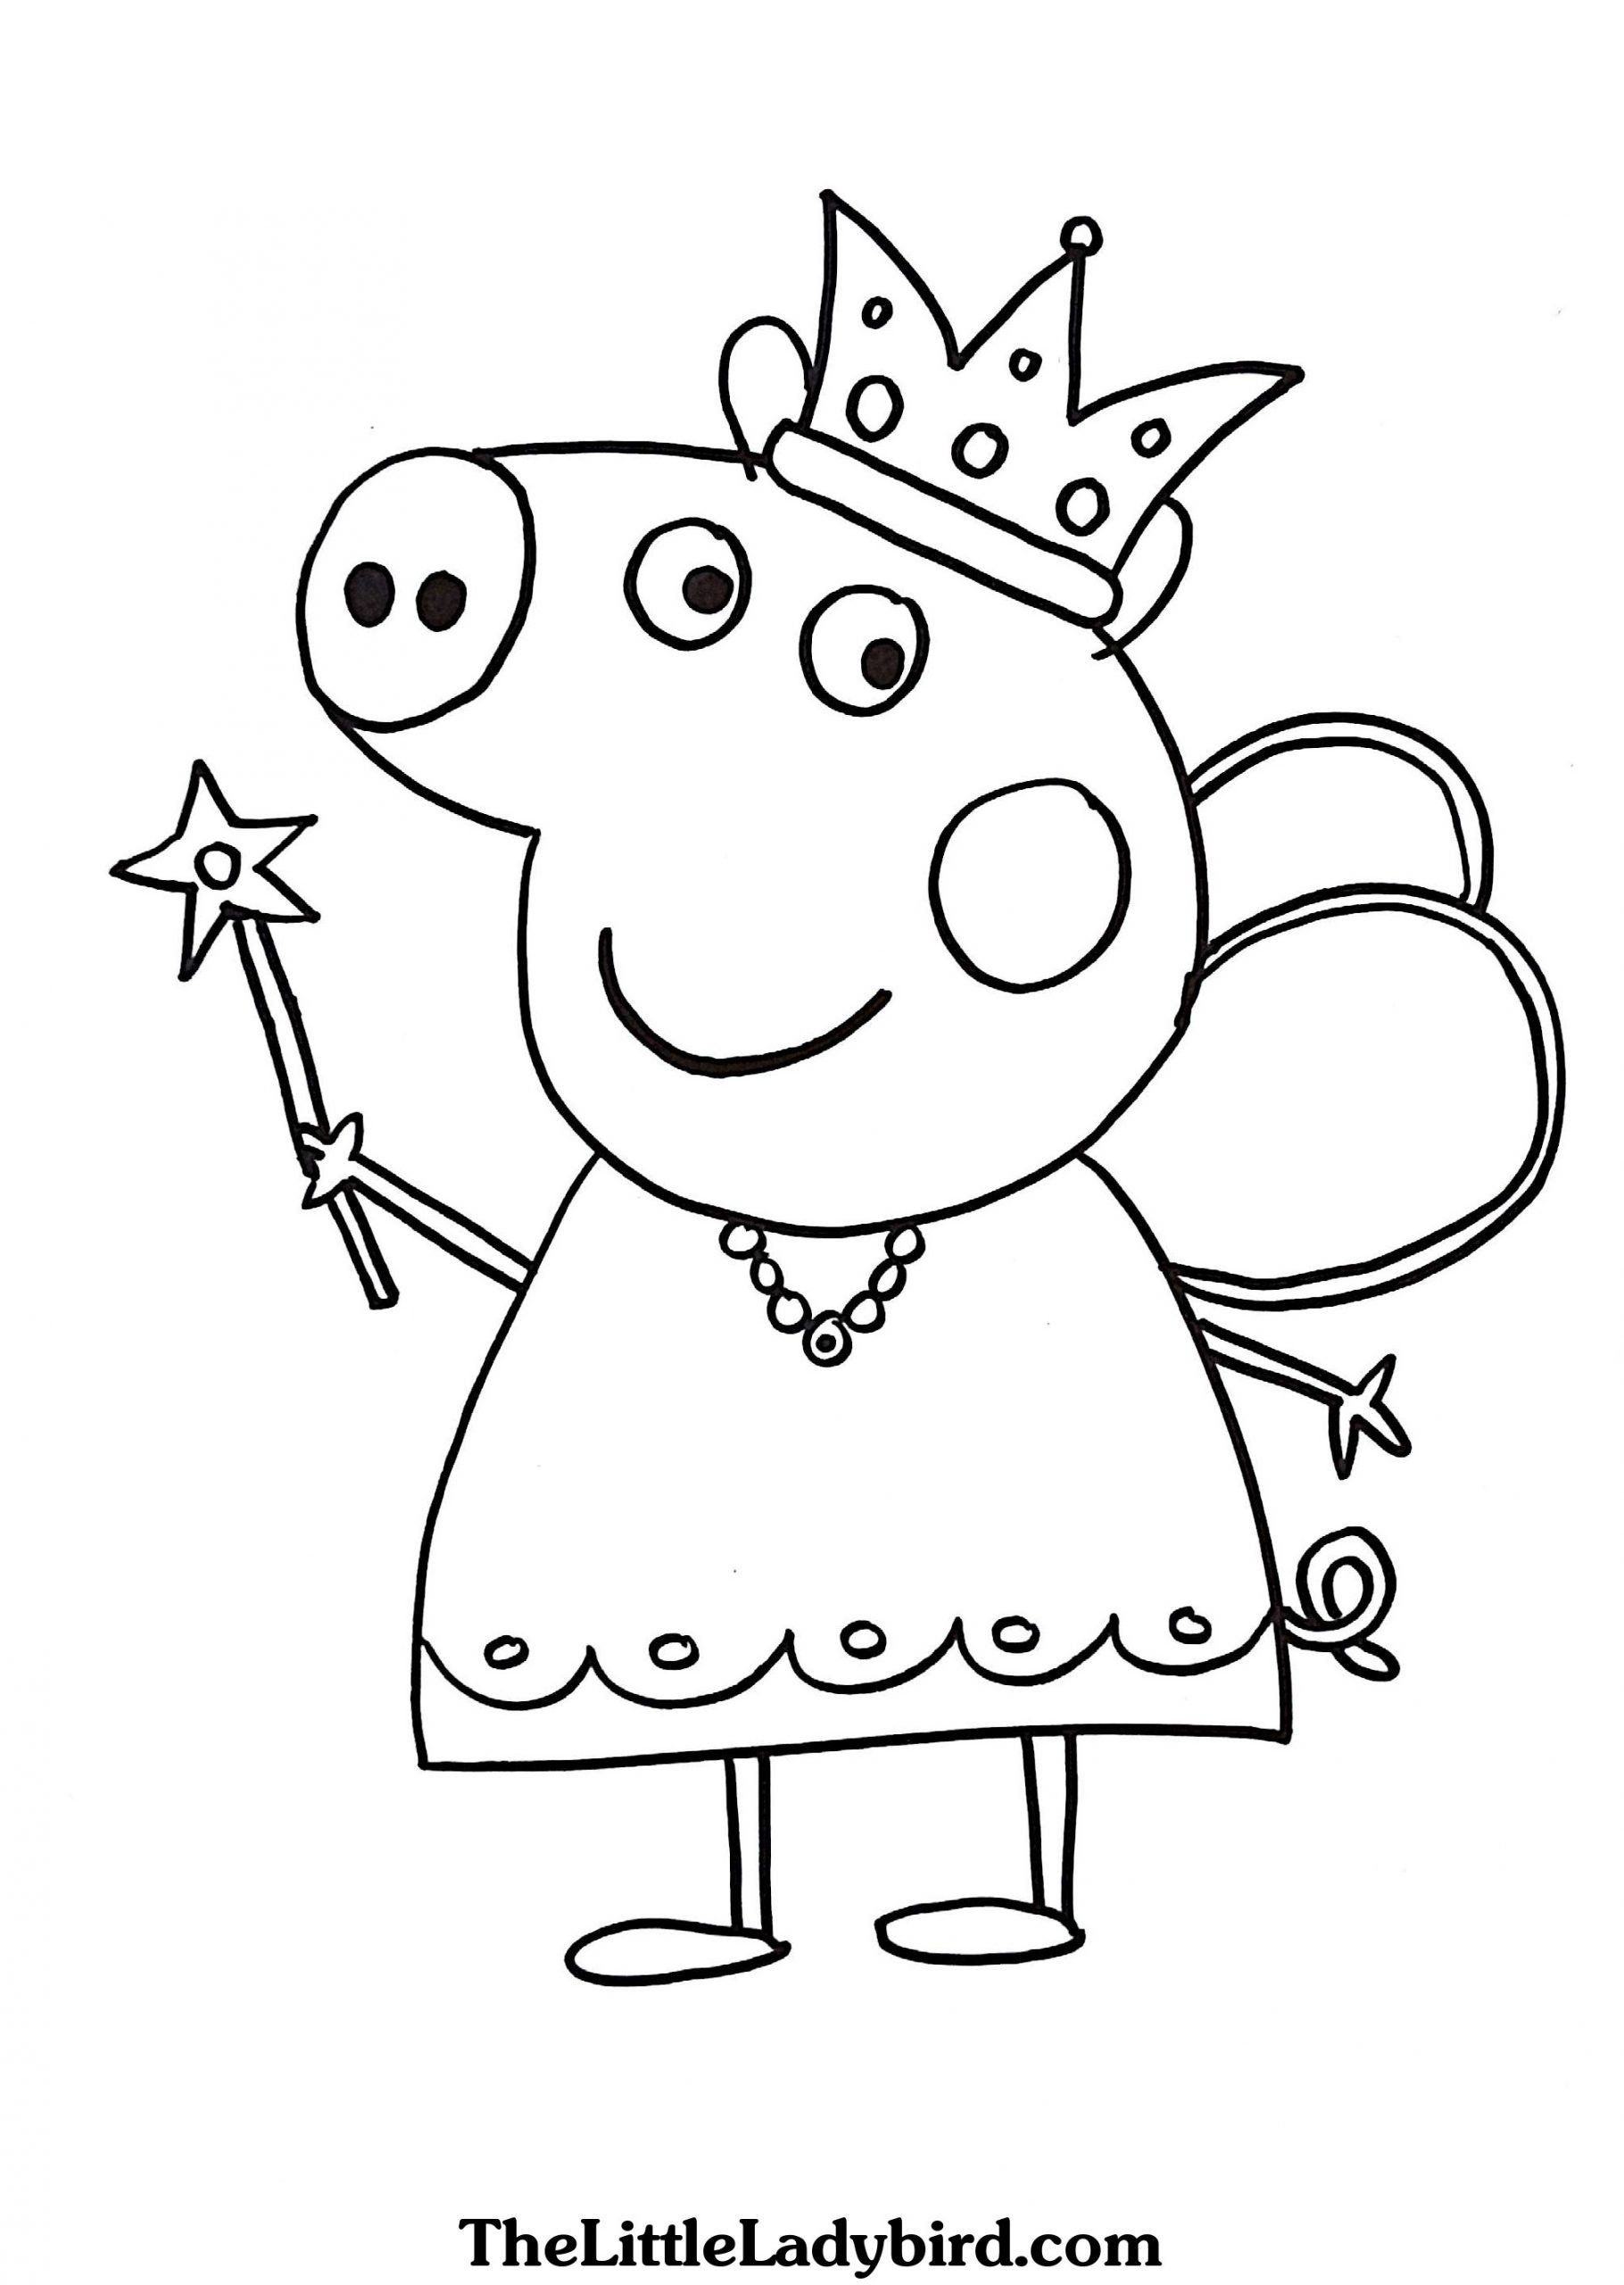 Coloring Pages For Kides Coloring Pages Coloring Pages For Kids Line Games Adults Peppa Pig Coloring Pages Peppa Pig Colouring Cartoon Coloring Pages